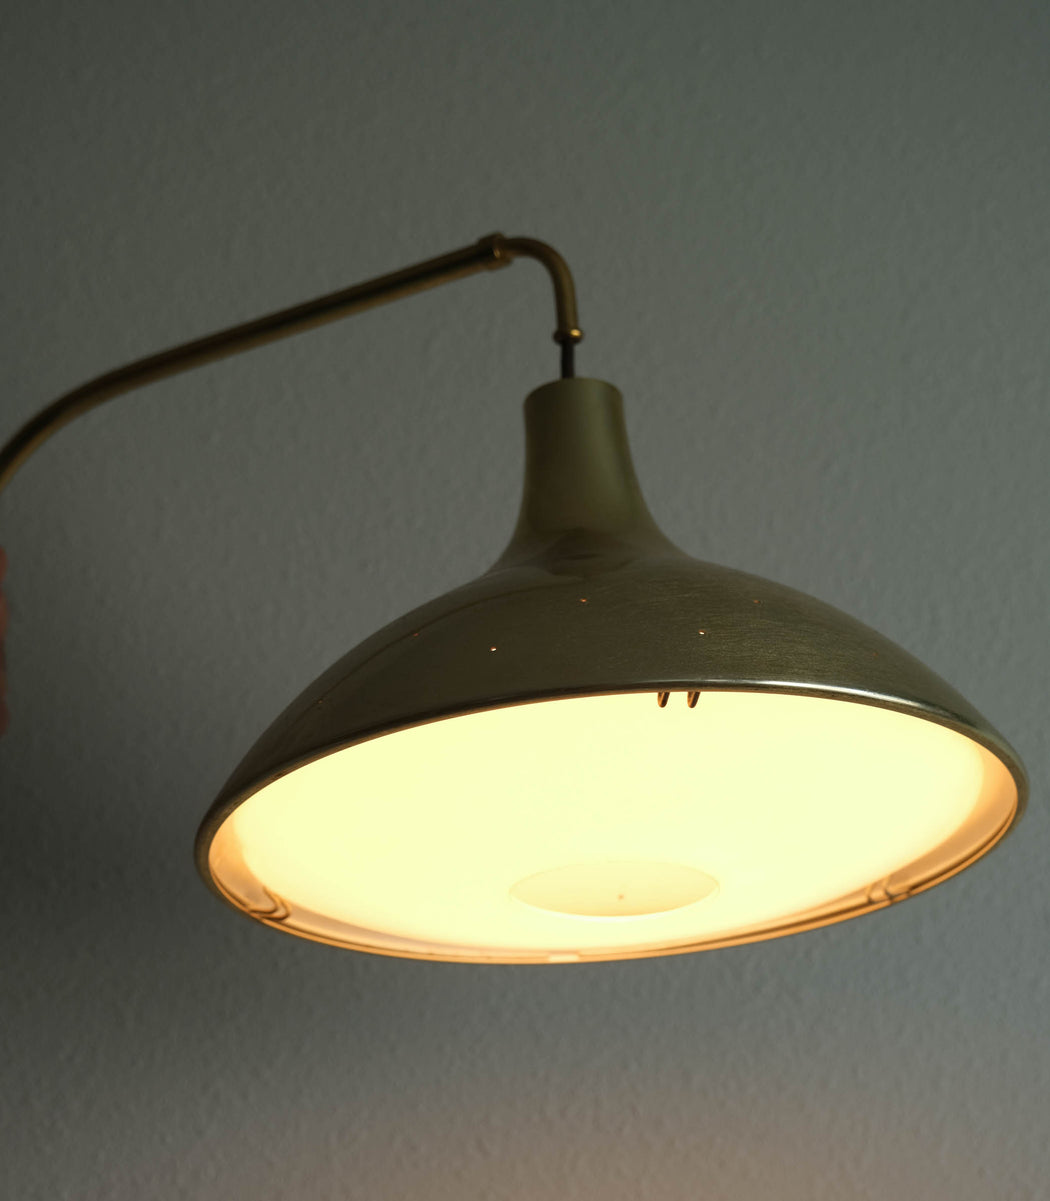 Mid Century Modern Pull Down Lamp | Vintage Wall Mounted Pendant Light Fixture